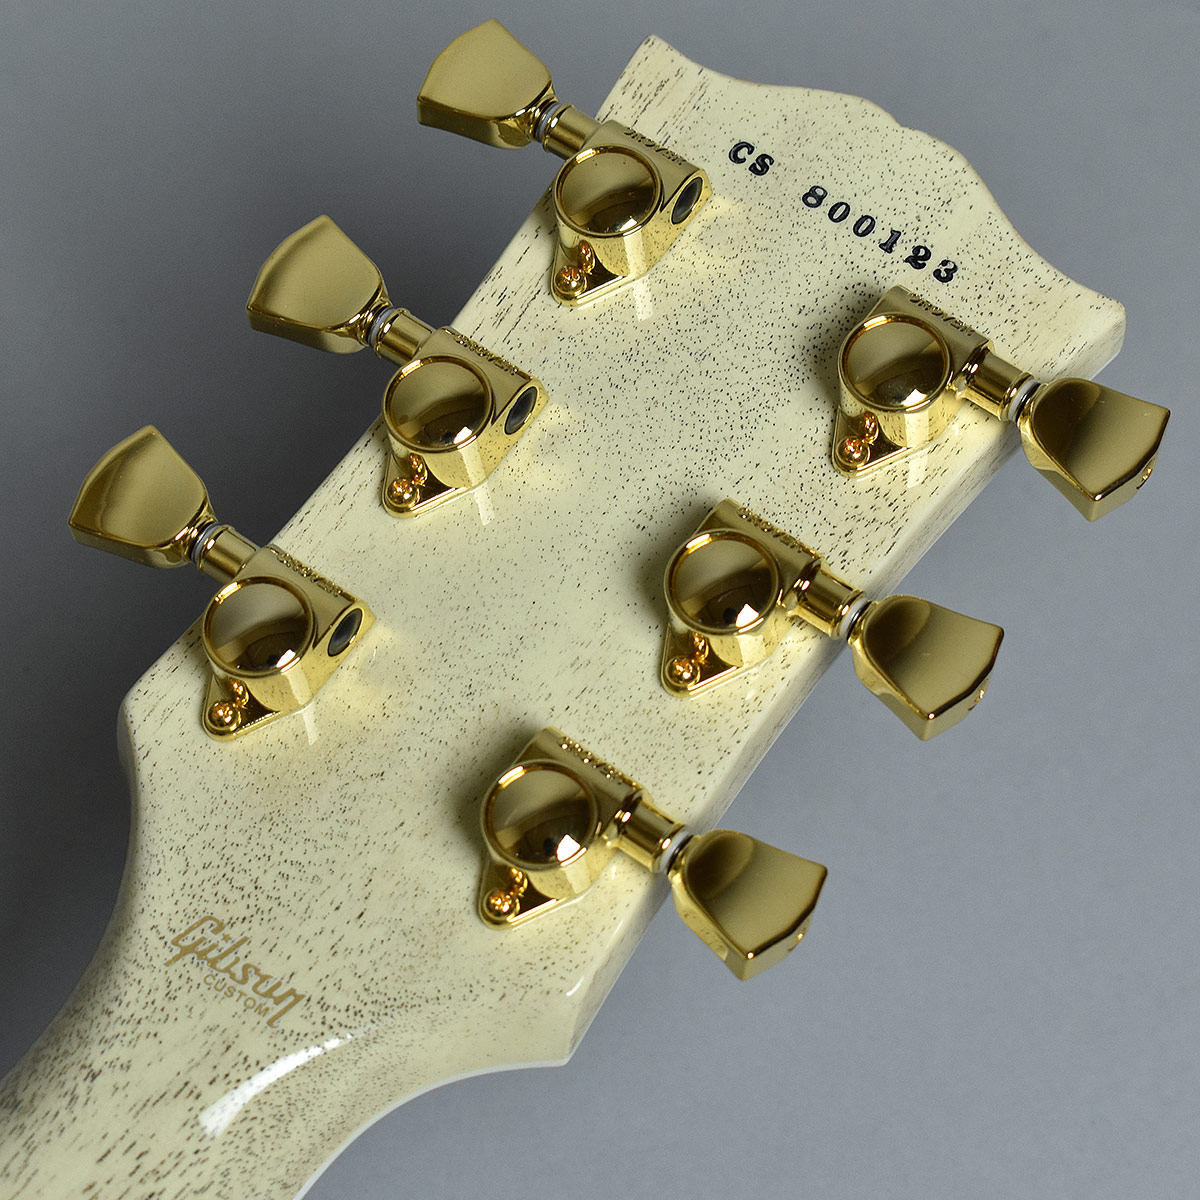 Gibson Custom Shop Hand Picked Limited Les Paul Custom 5A Quiltのヘッド裏-アップ画像